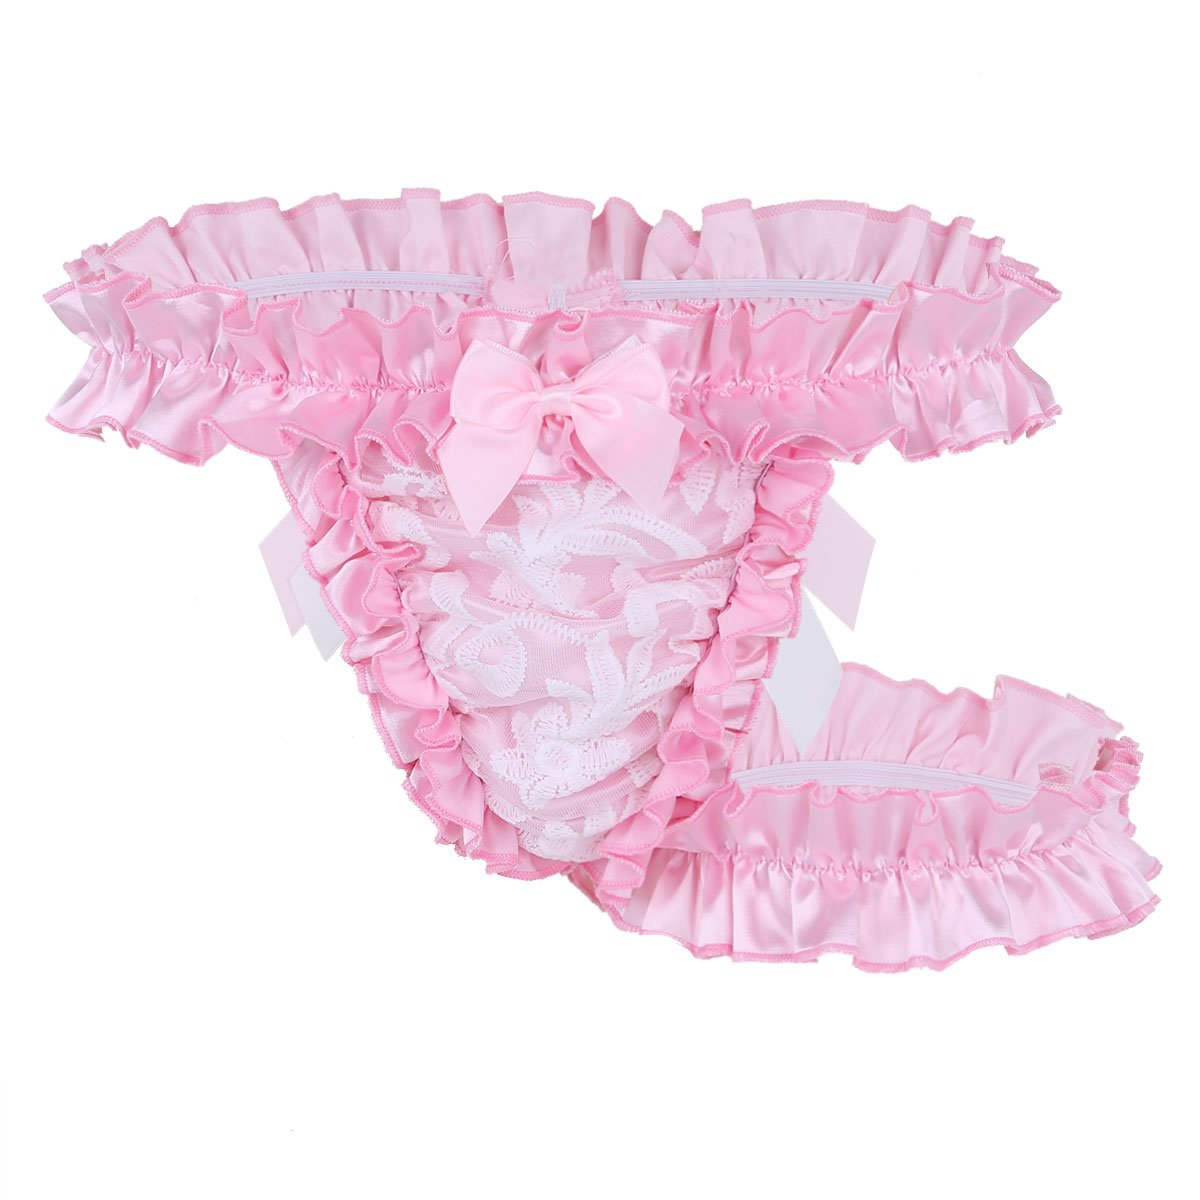 e4873b622e20 MSemis Men's Ruffle Frilly Satin Lace Sissy Maid Briefs Underwear Tutu  Knickers Crossdress Panties